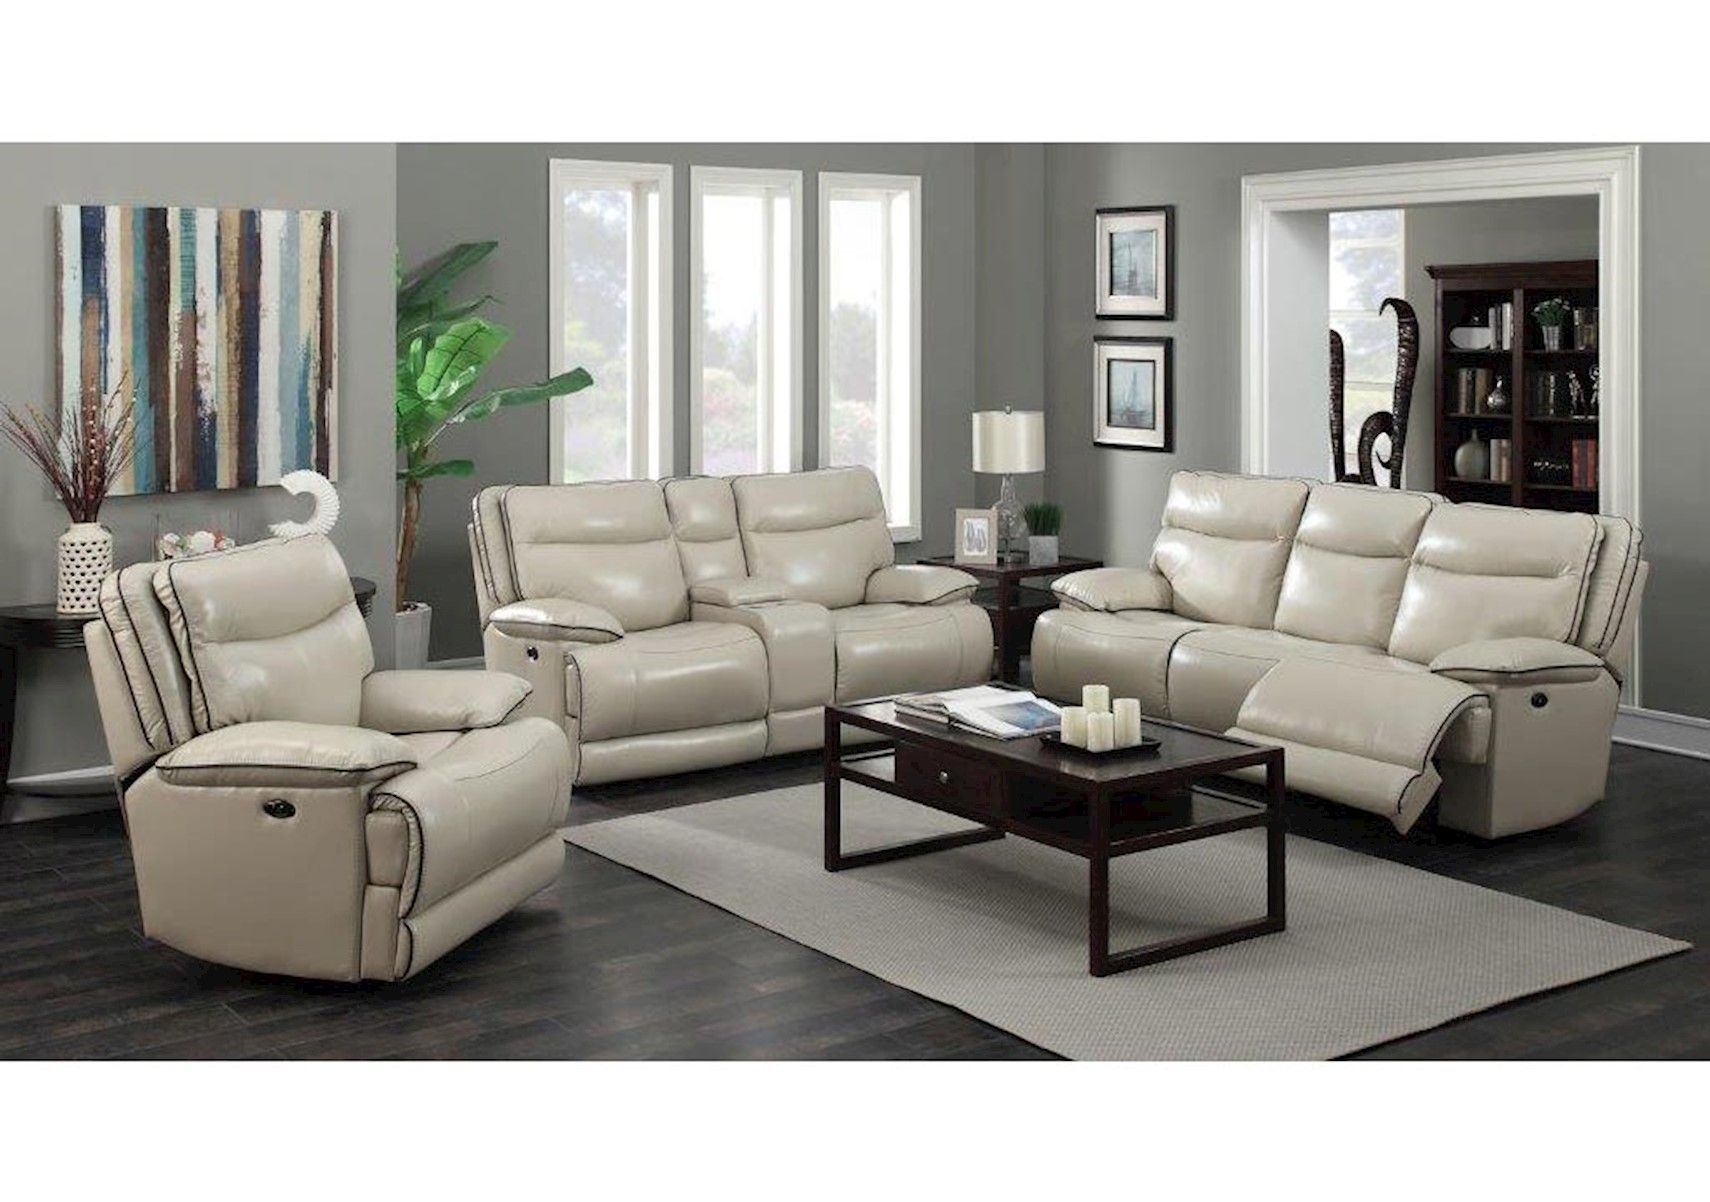 Lacks | Owen 2 Pc Reclining Living Room Set Part 60